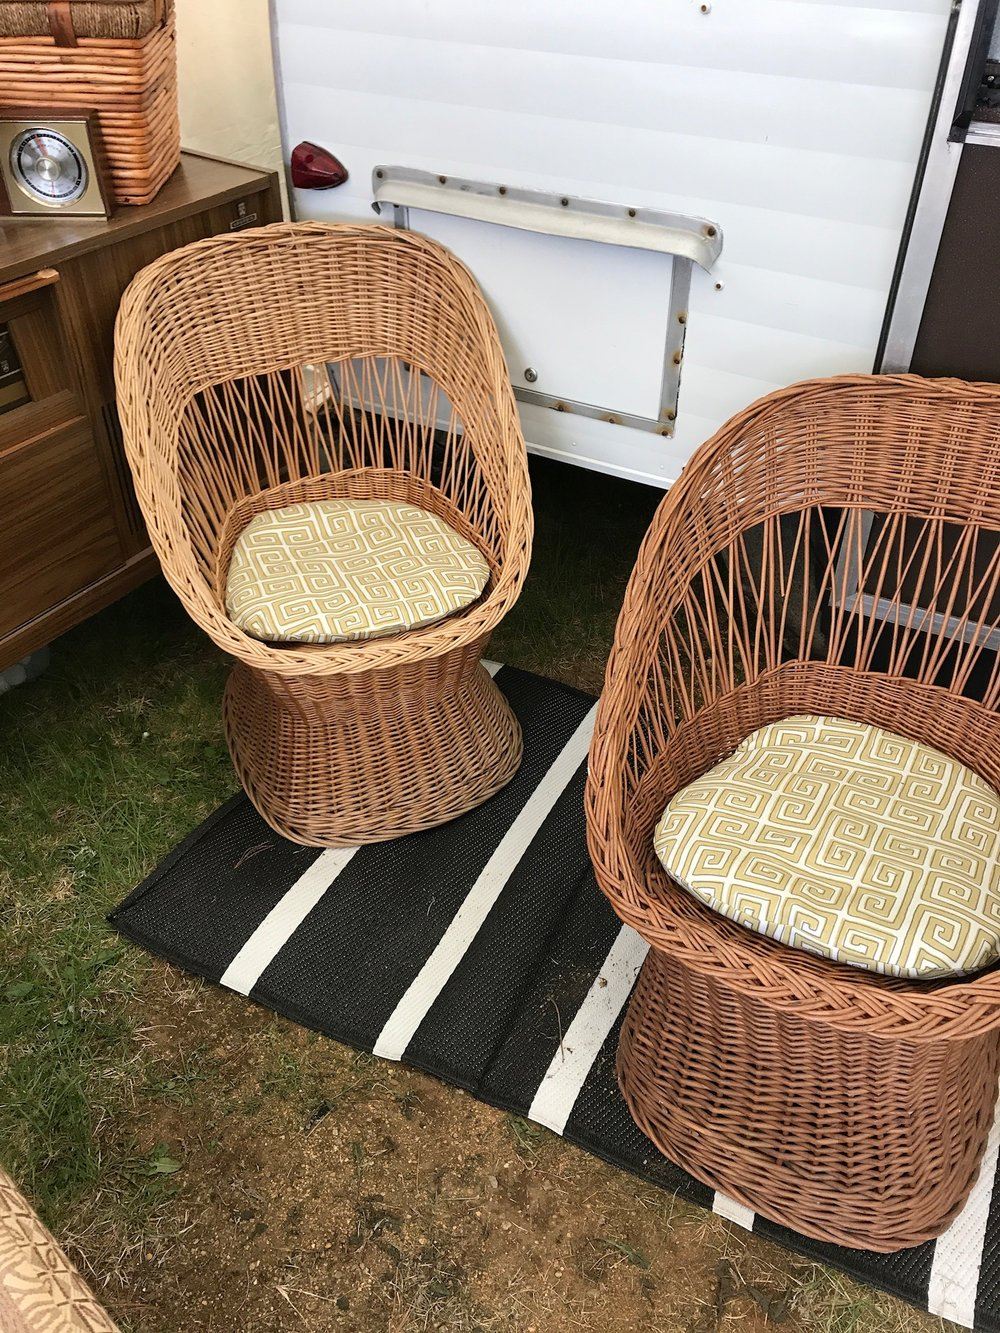 Bring on the summer with these fun patio chairs!!!